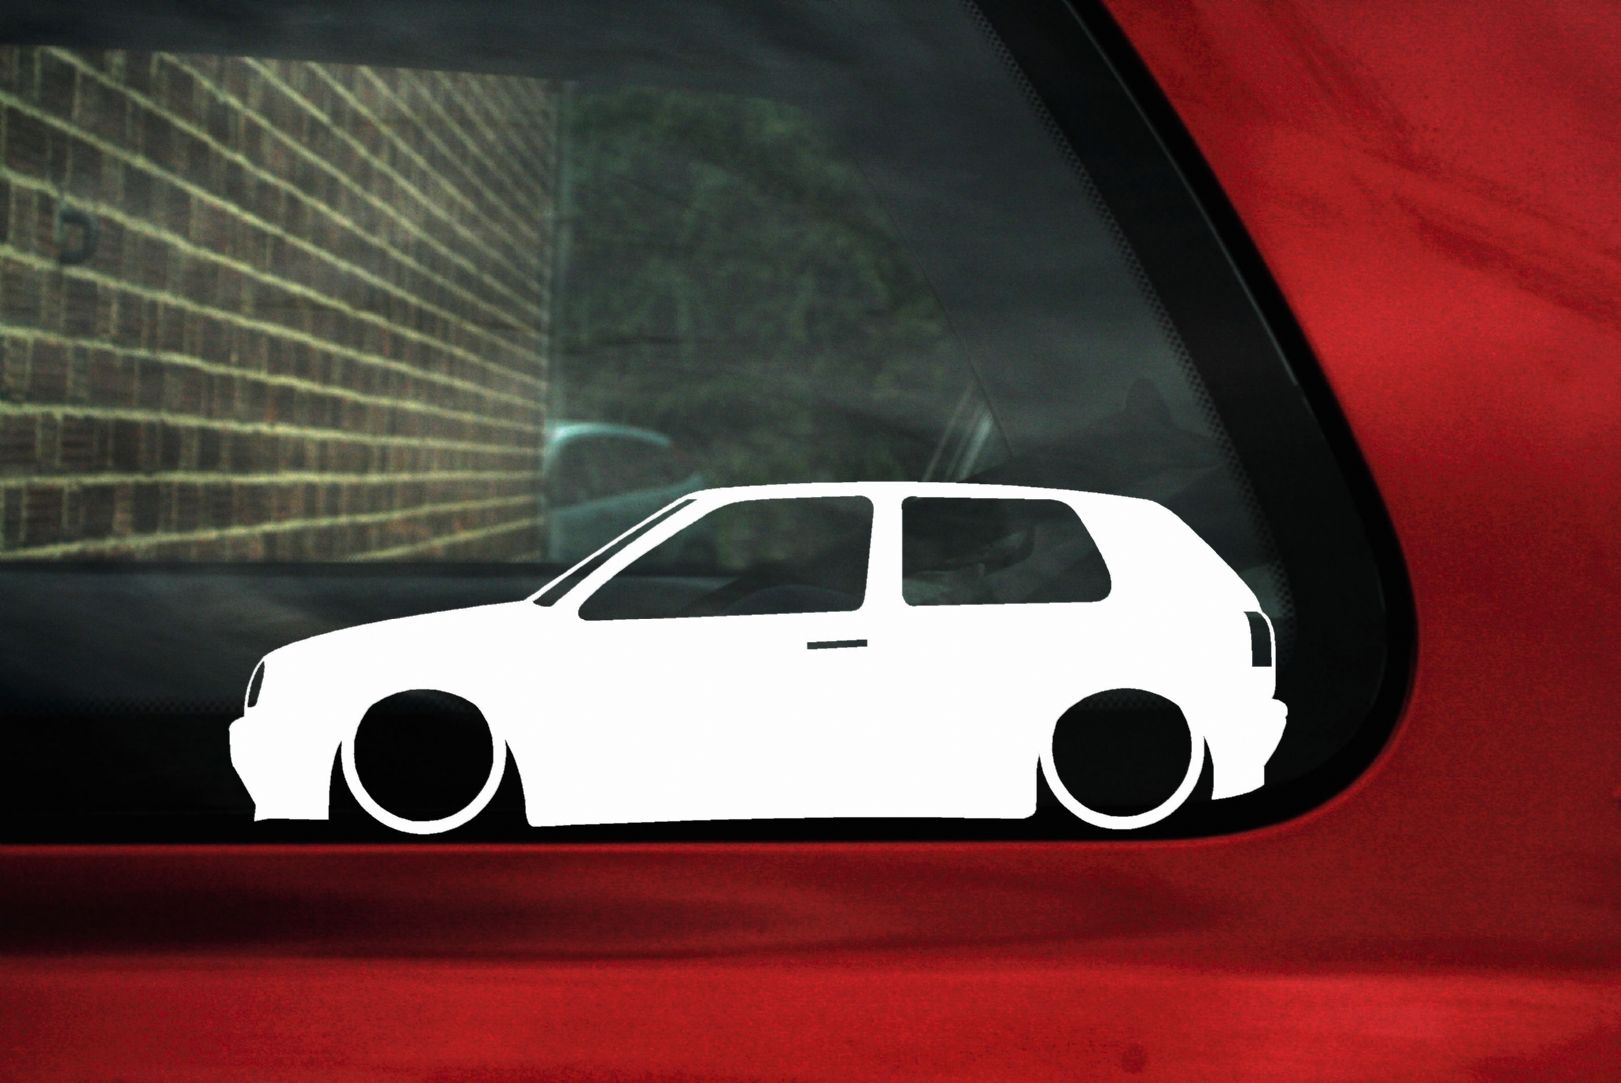 2x Low Vw Golf Mk3 Gti 16v Vr6 Tdi Outline Silhouette Stickers Decals